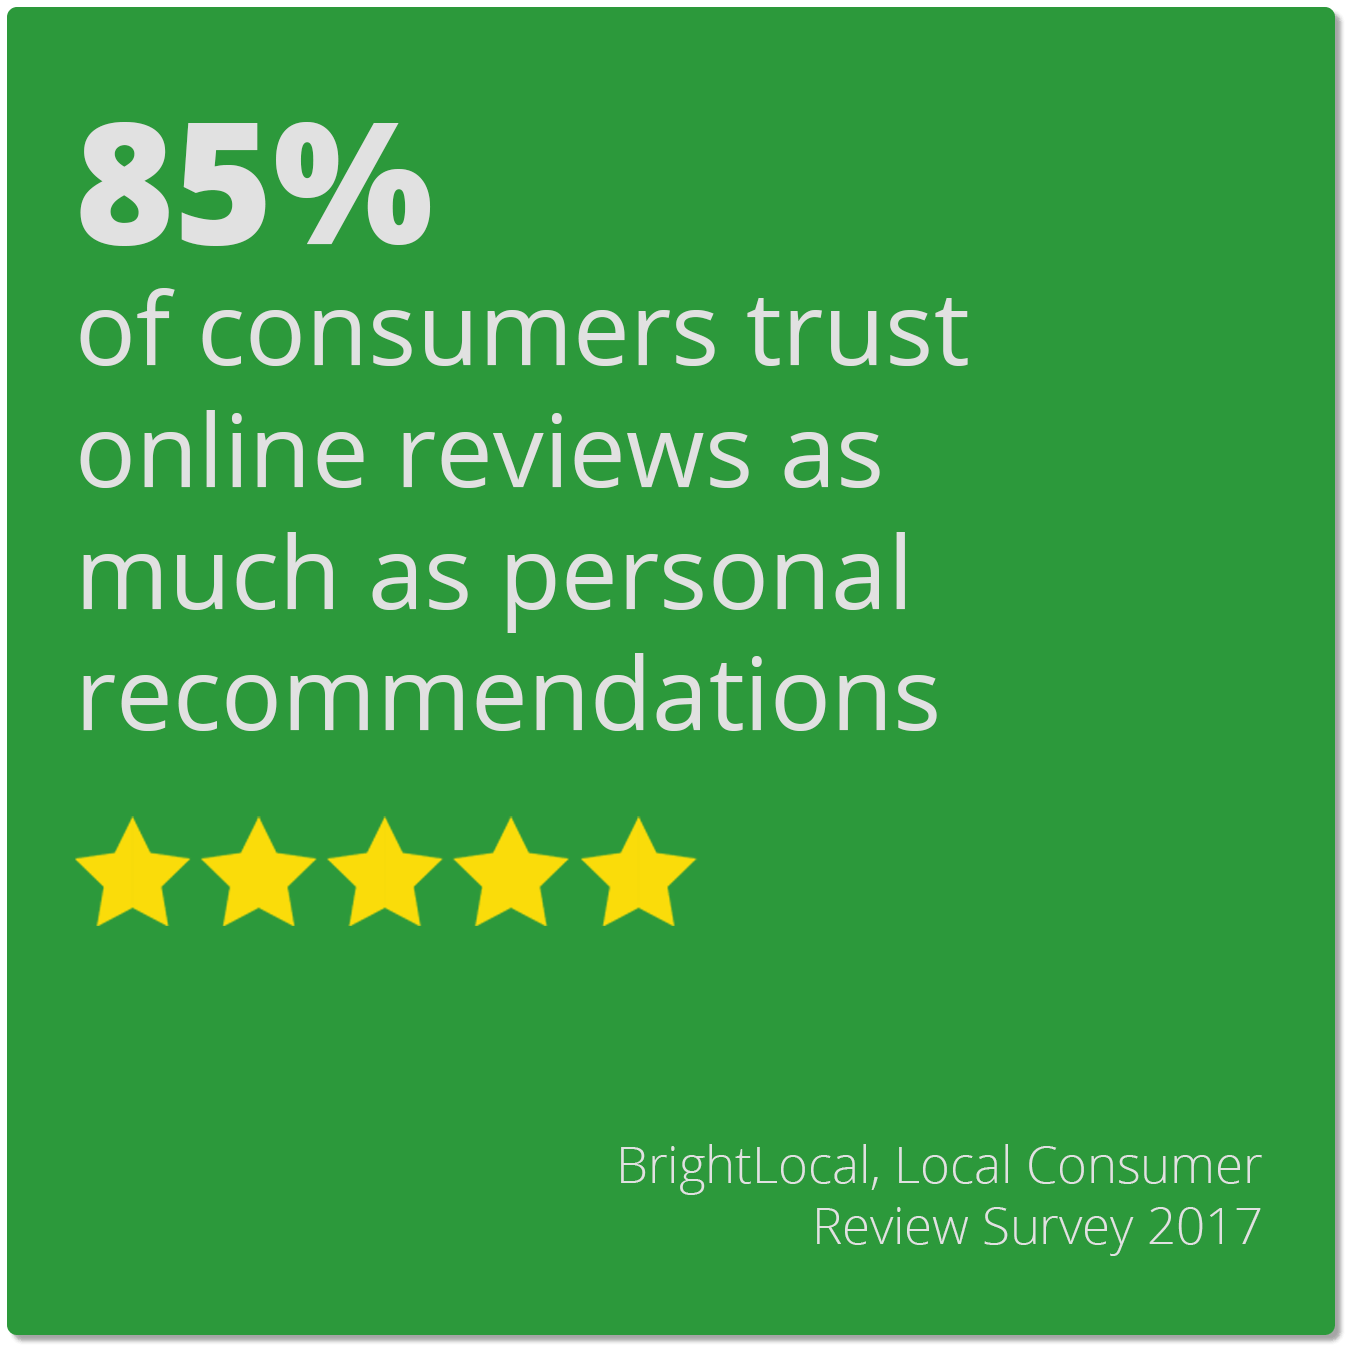 85% of consumers trust online reviews as much as personal recommendations